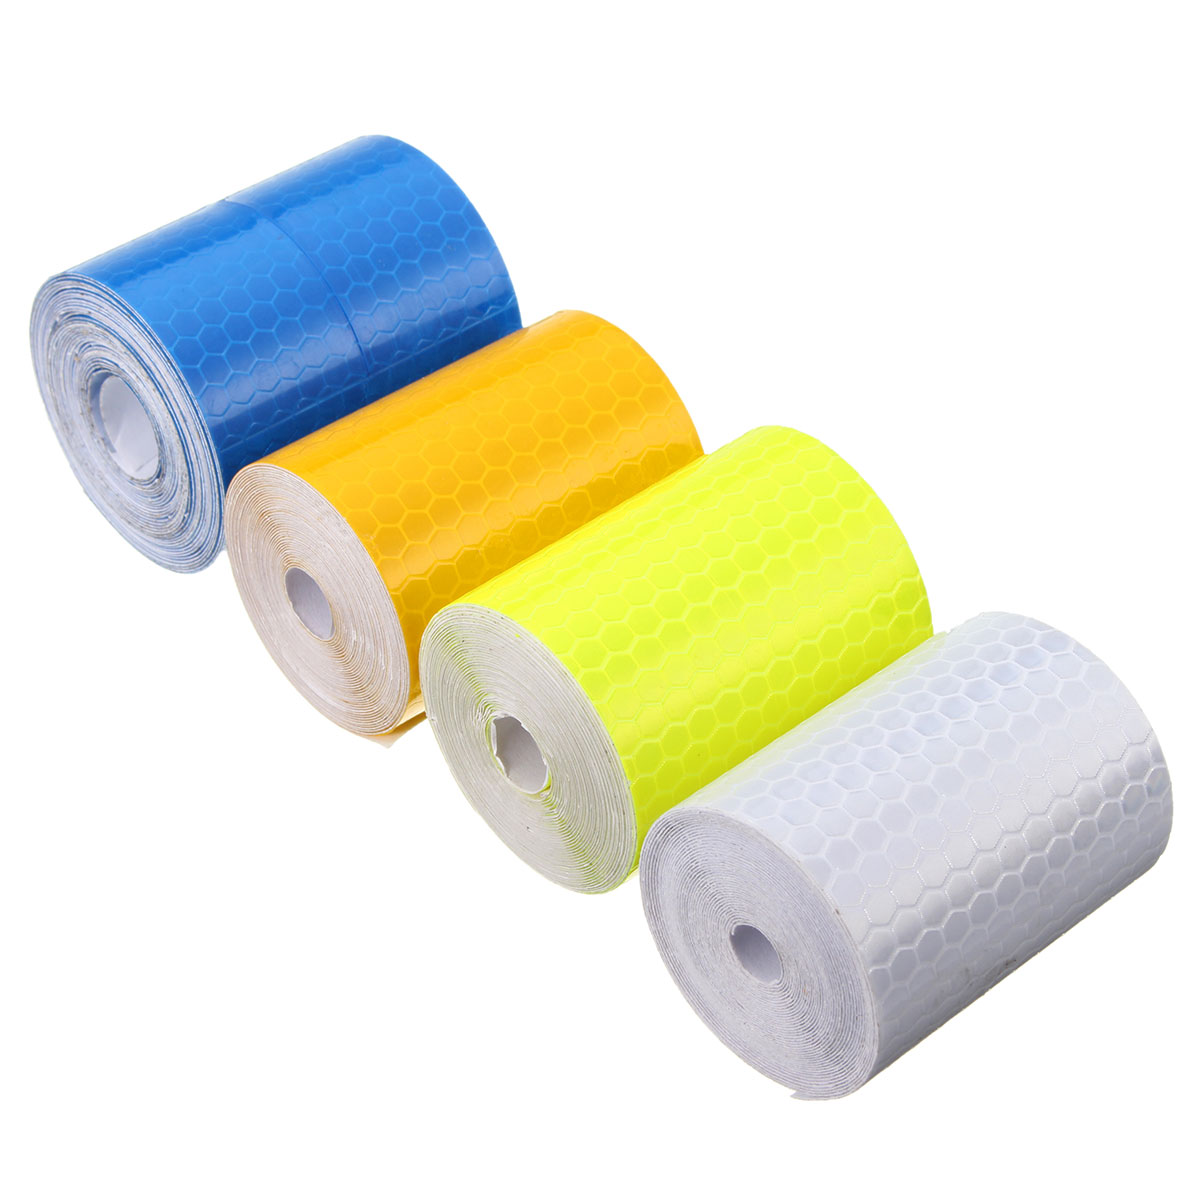 NEW 5cm x 300cm Colorful Smooth Surface Water Resistance Reflective Safety Warning Conspicuity Tape Film Sticker ...